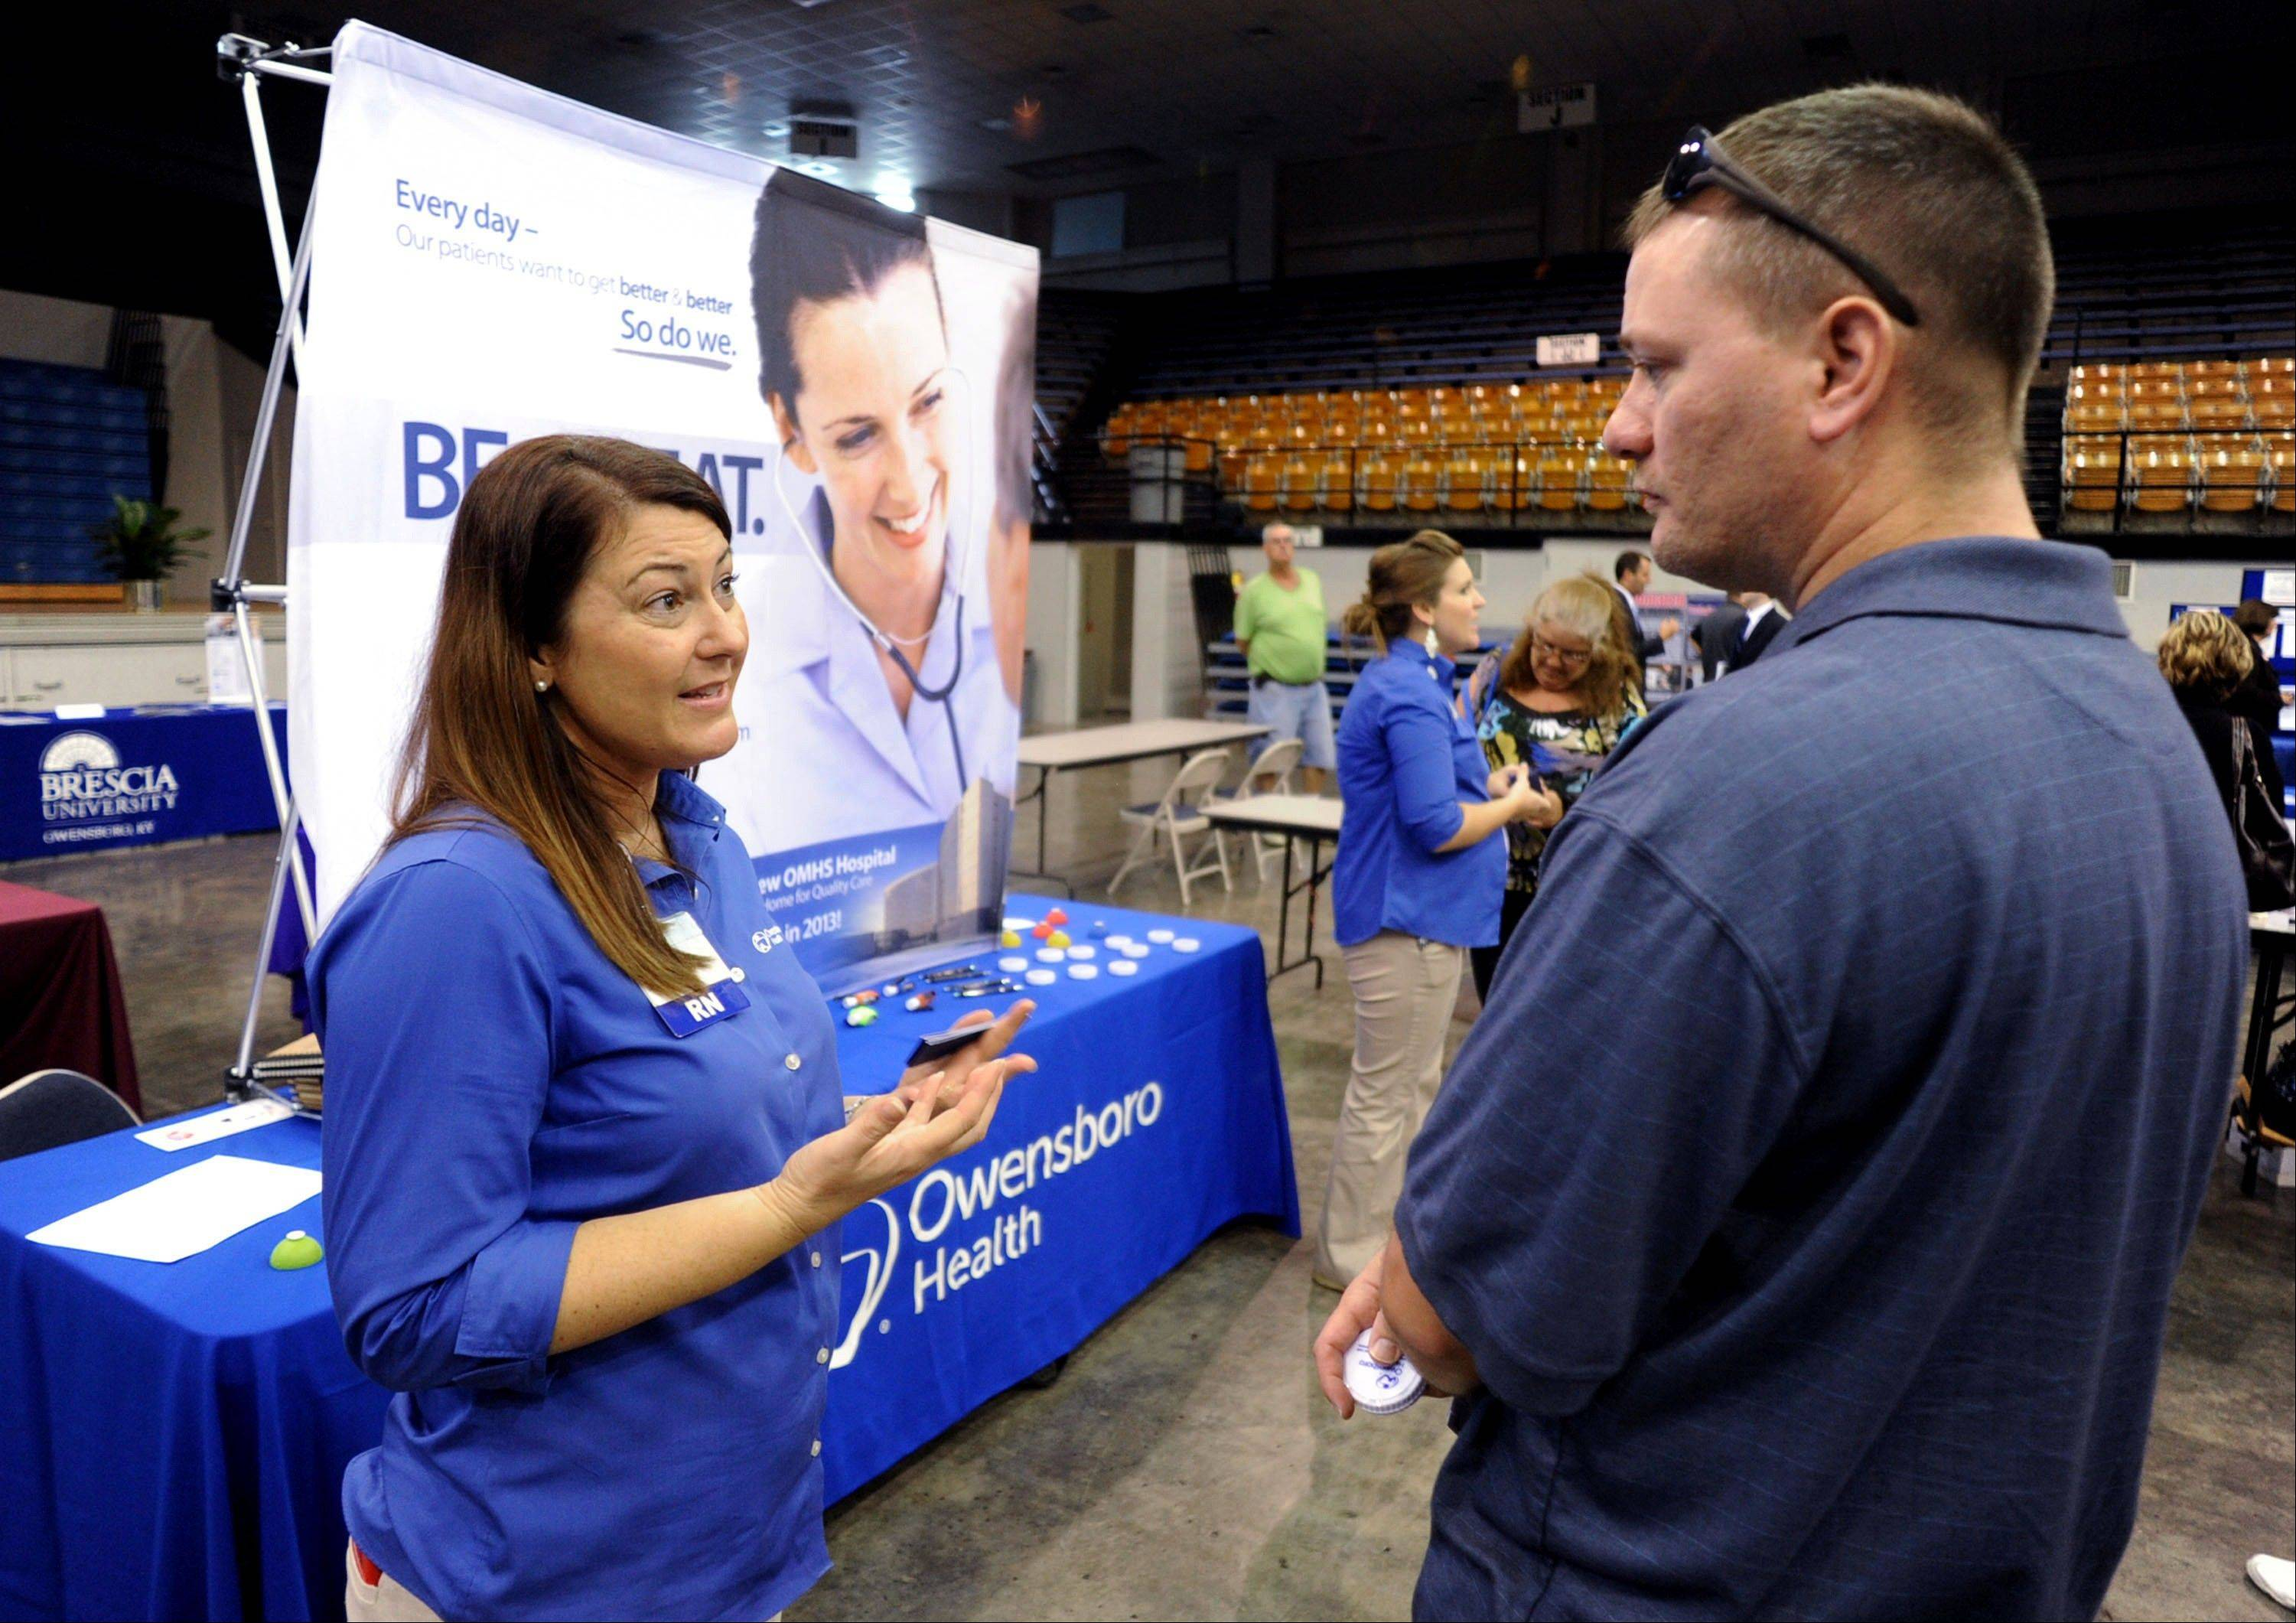 Registered nurse Salanda Bowman, left, talks with part-time Kentucky Wesleyan College student Jason Ward, of Whitesville, about job openings at the Owensboro Health Regional Hospital during a Regional Career and Job Fair in the Owensboro Sports Center in Owensboro, Ky.